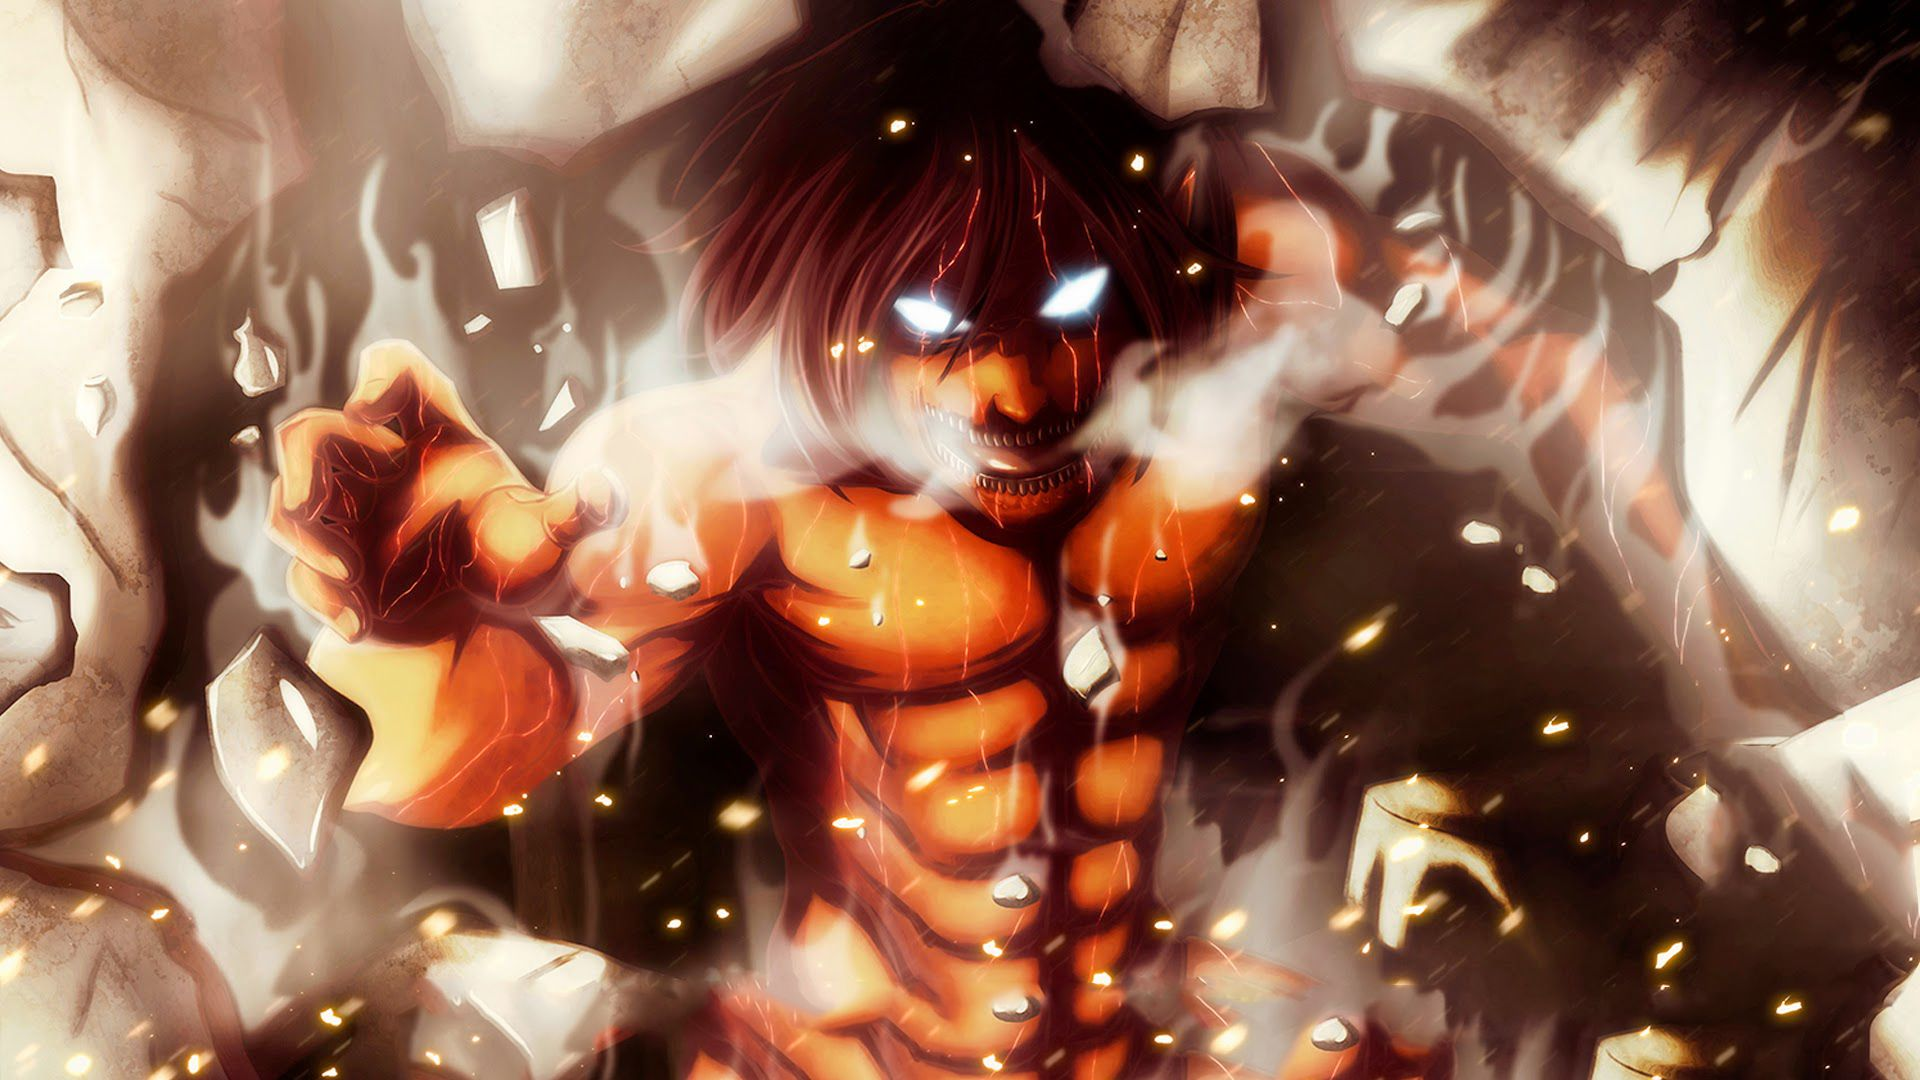 Eren Yeager Titan Computer Wallpapers Desktop Backgrounds 1920x1080 Id 606229 Attack On Titan Eren Attack On Titan Anime Wallpaper